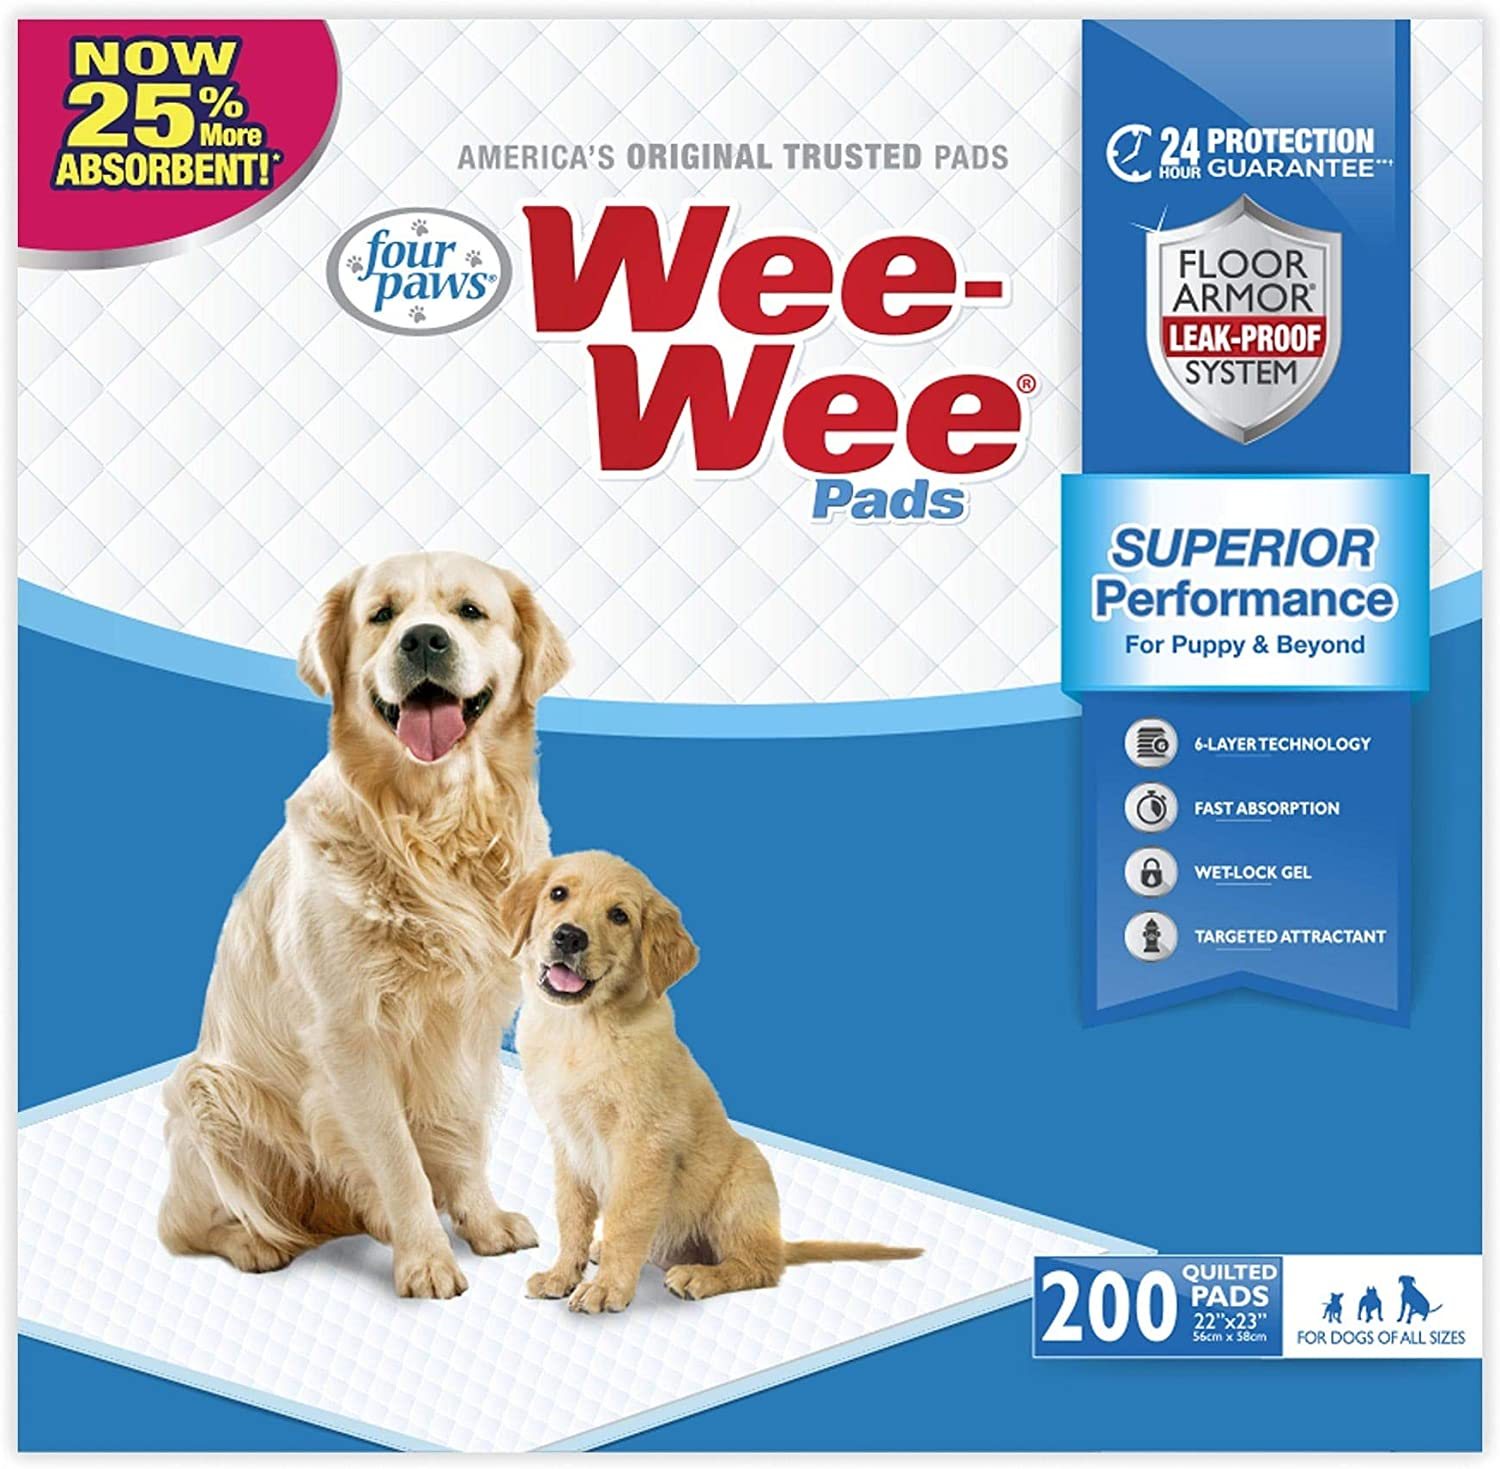 WEE-WEE PADS 200 Safety and Philadelphia Mall trust CT Count